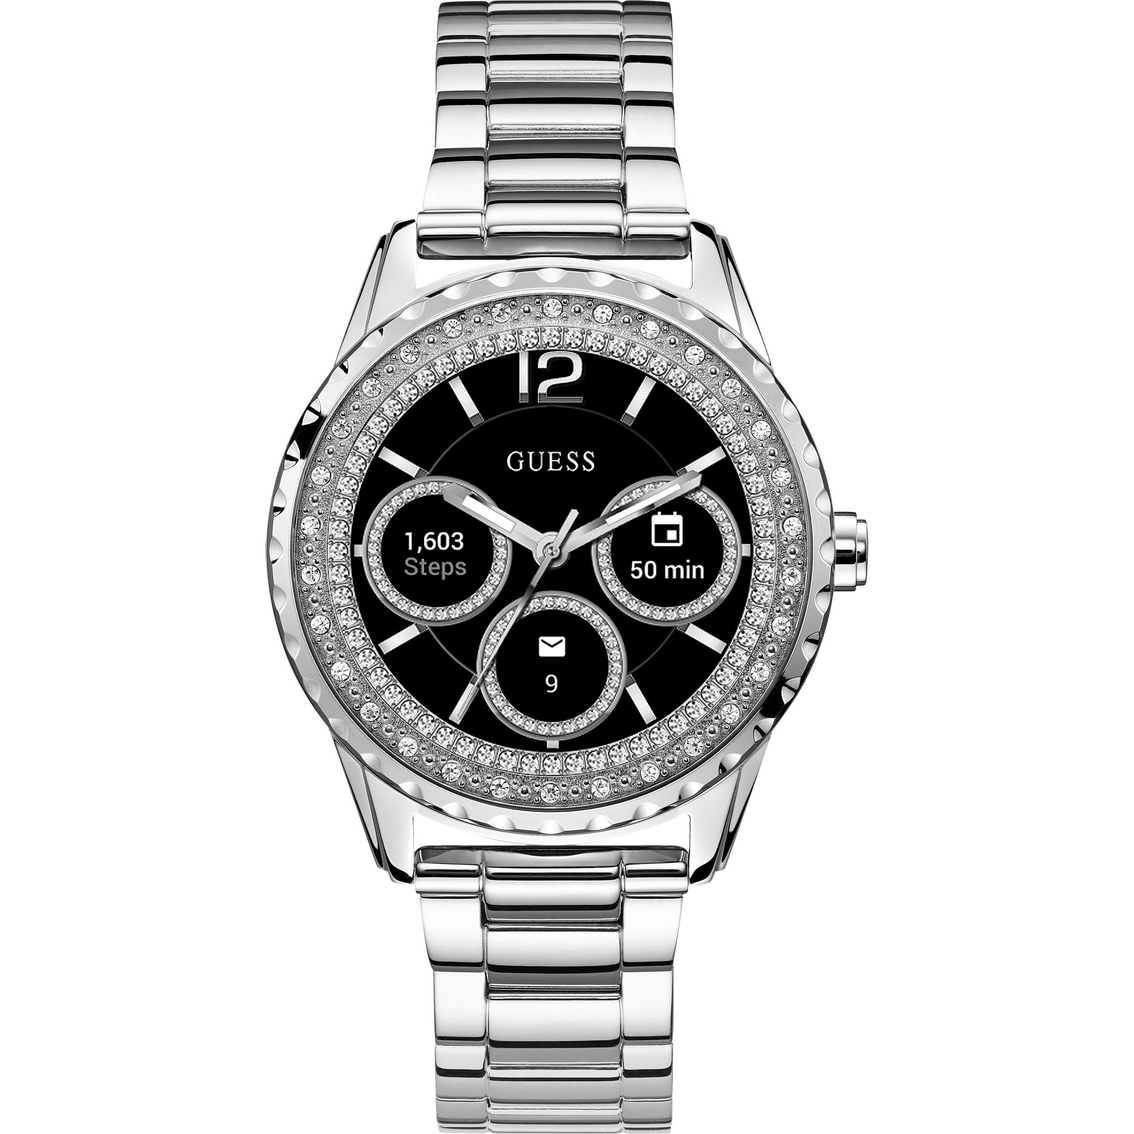 sostegno adolescente Esclusivo  Guess Connect Jemma Os Smart Watch | Smartwatches | Jewelry & Watches |  Shop The Exchange